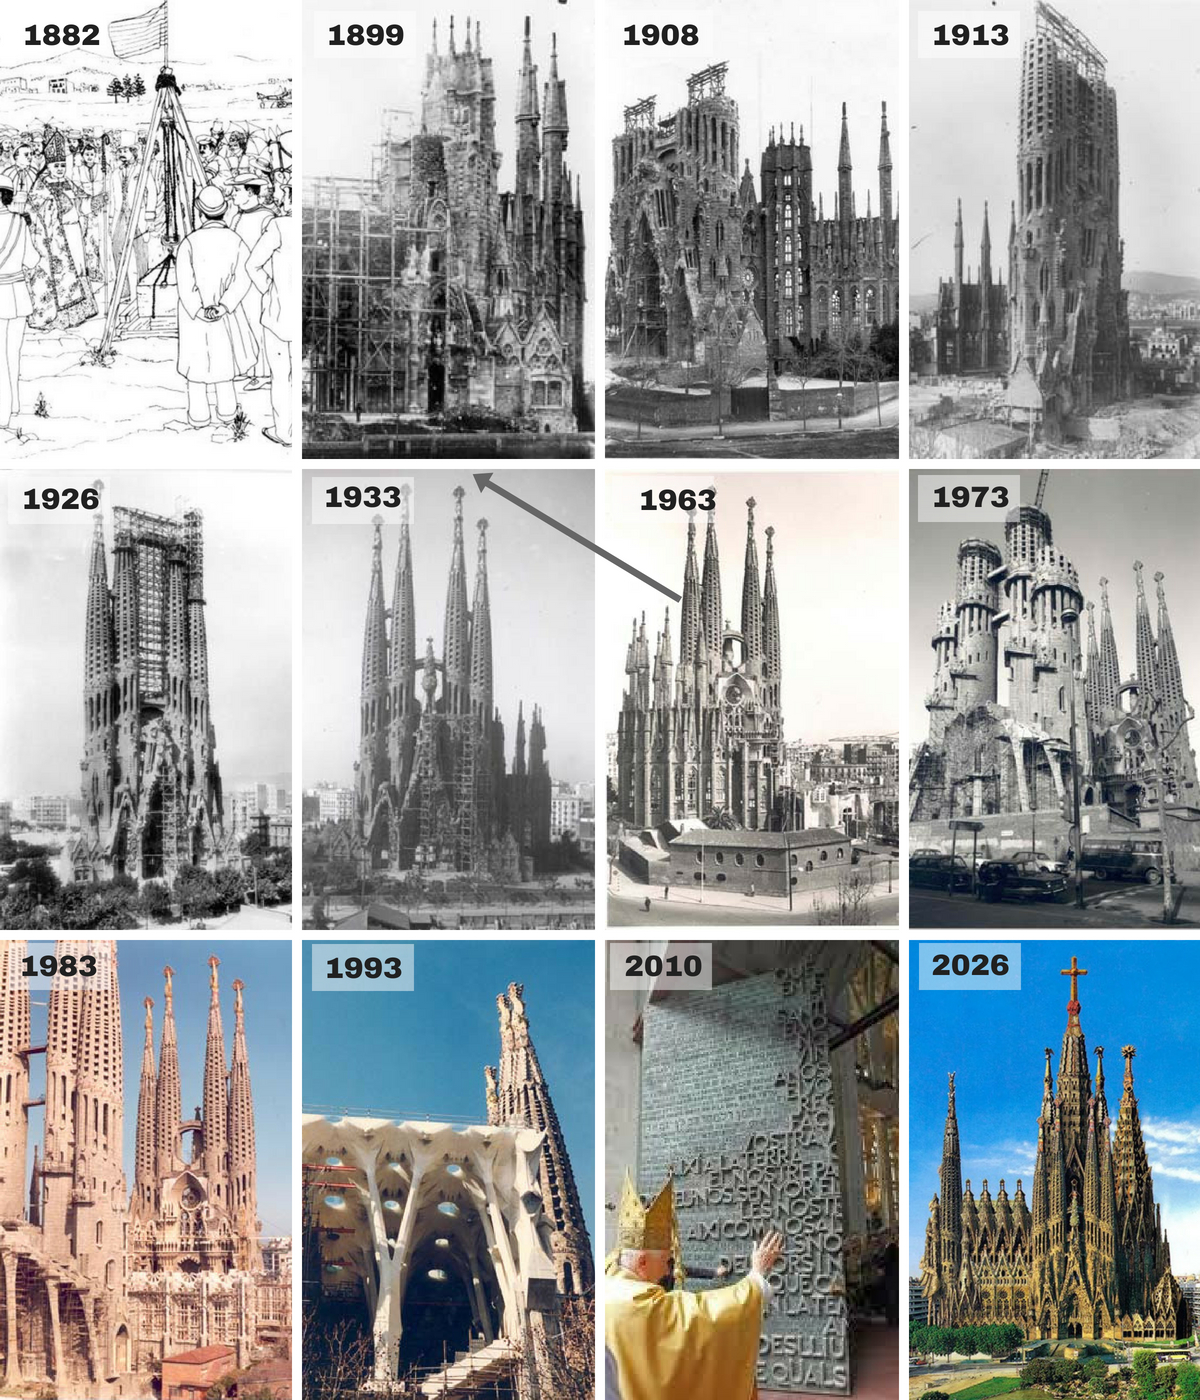 Will The Sagrada Familia Be Finished In 2026